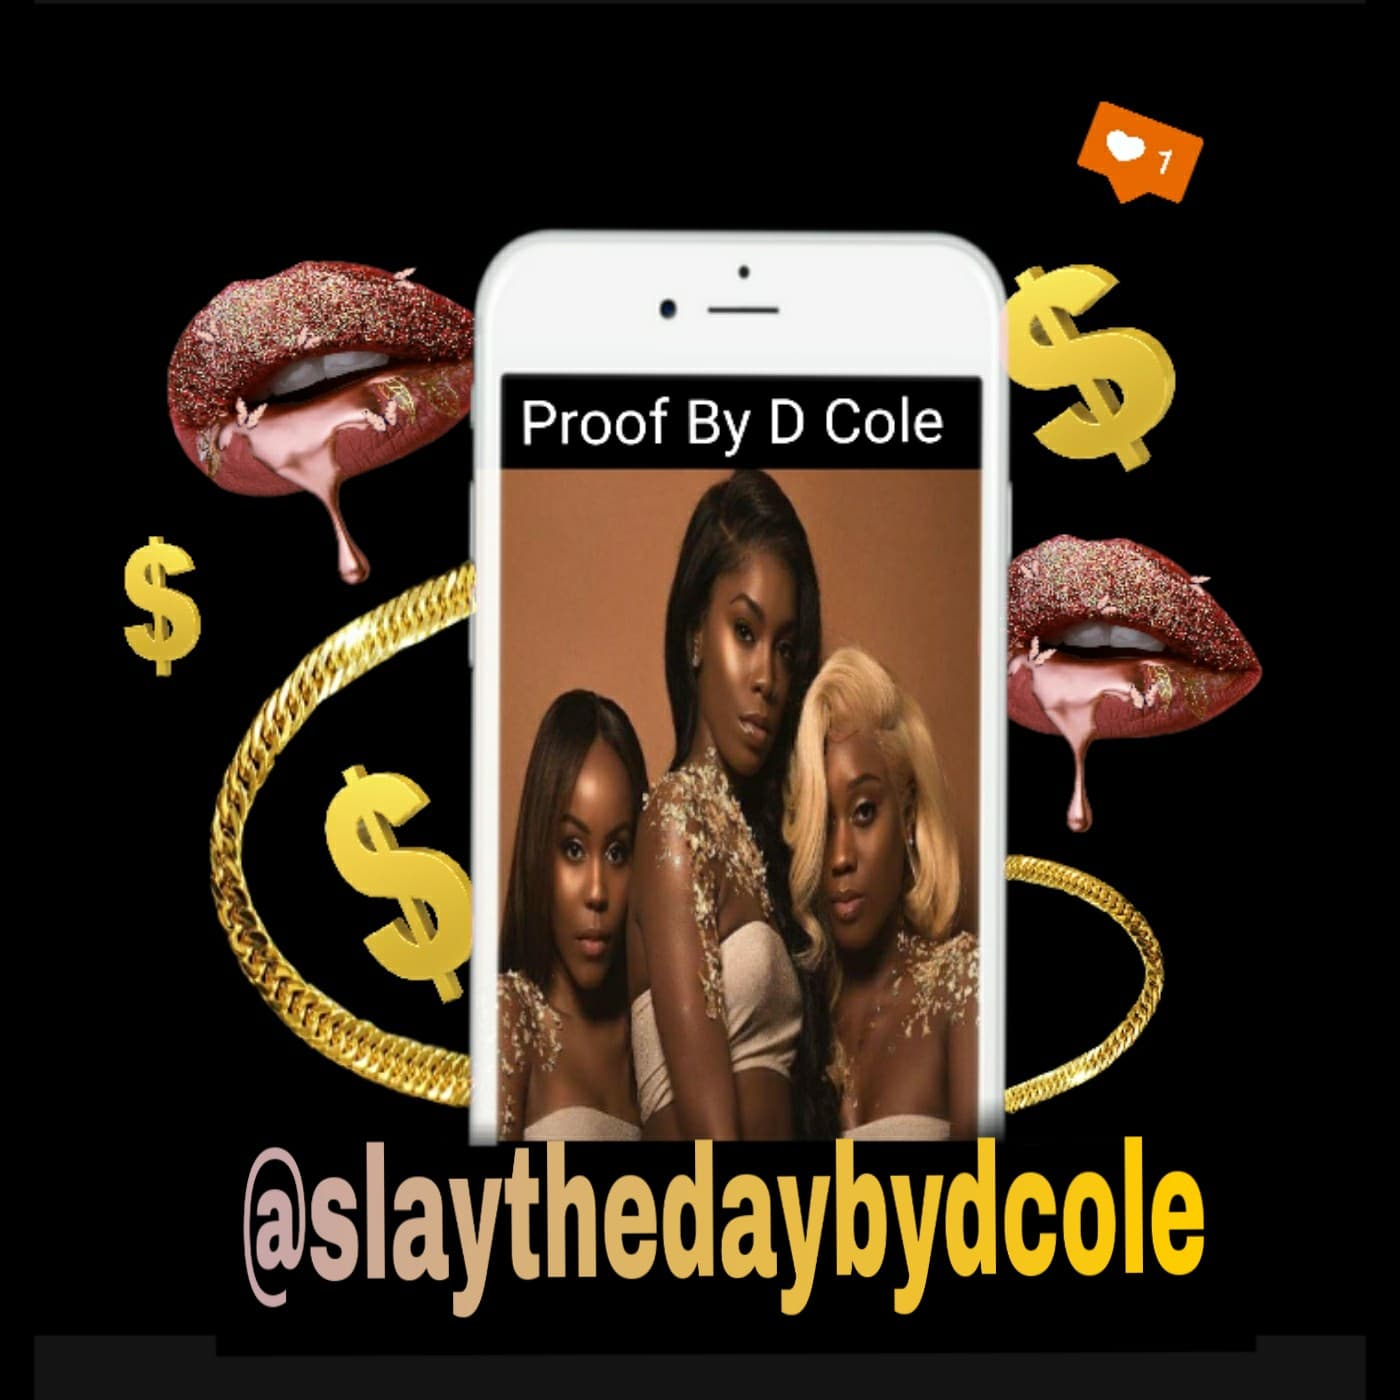 slaythedaybydcole,Custom Made Flyers & Price List,Slay The Day By D Cole,flyer